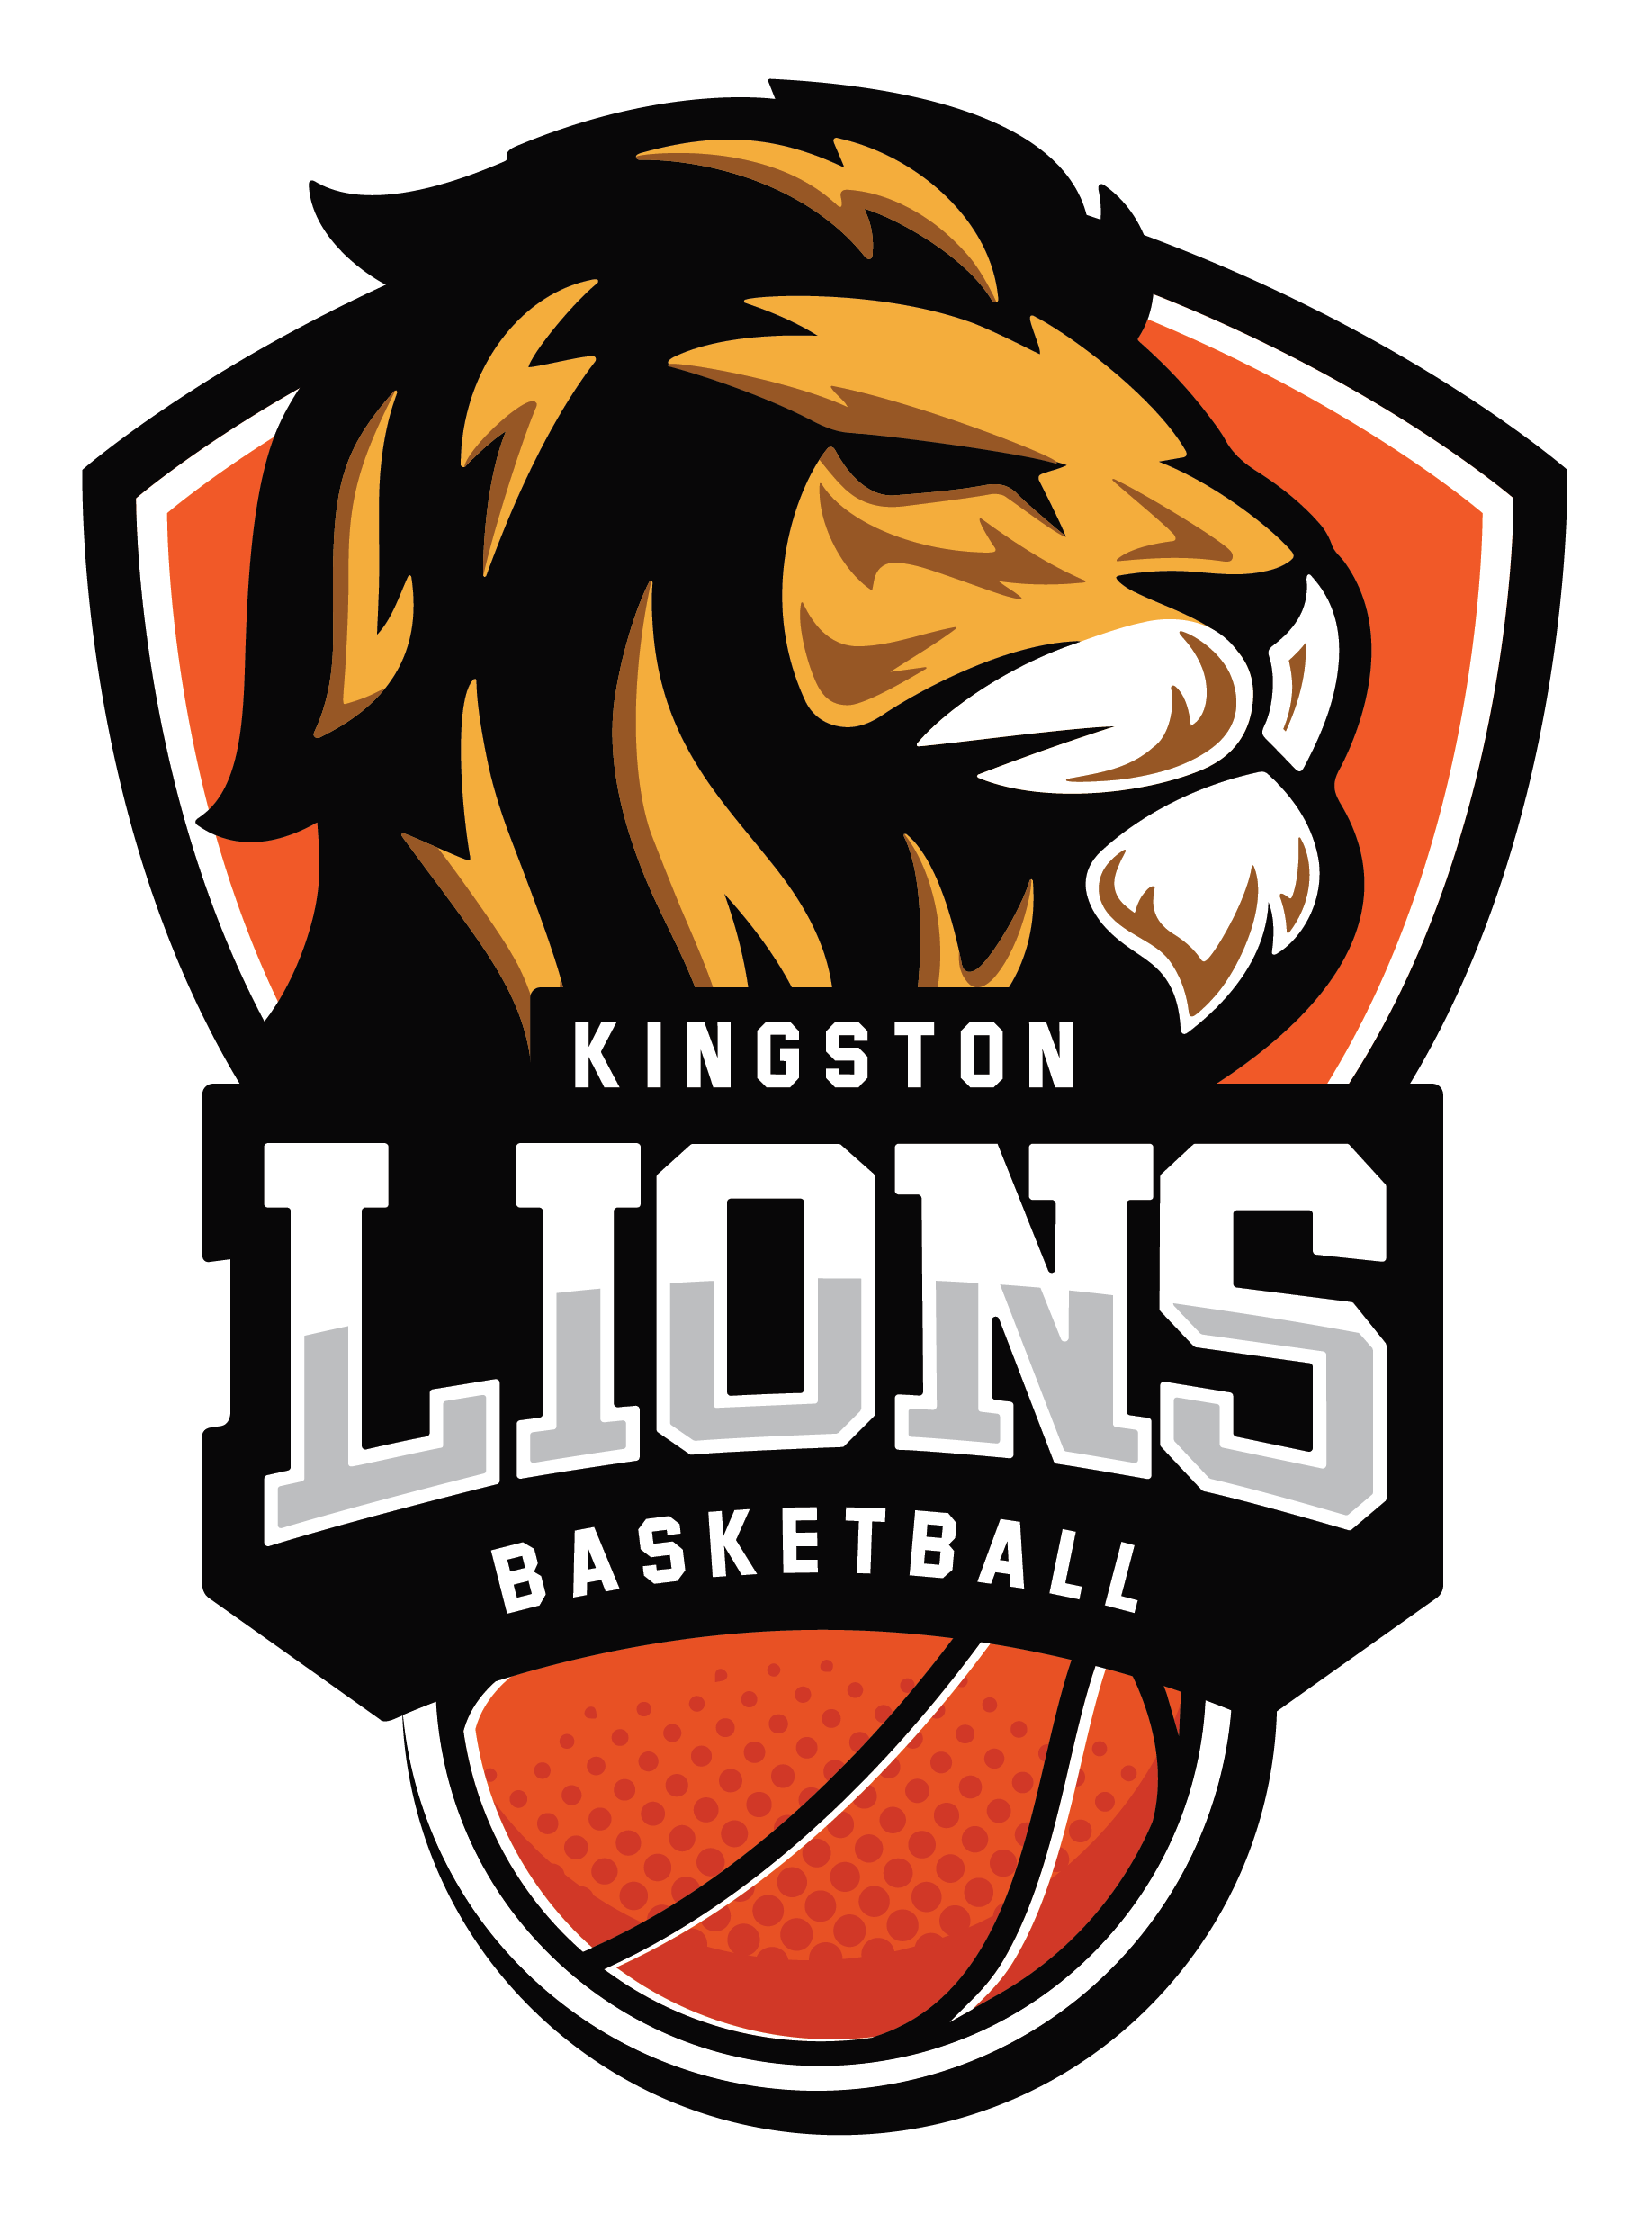 Lions Basketball Club